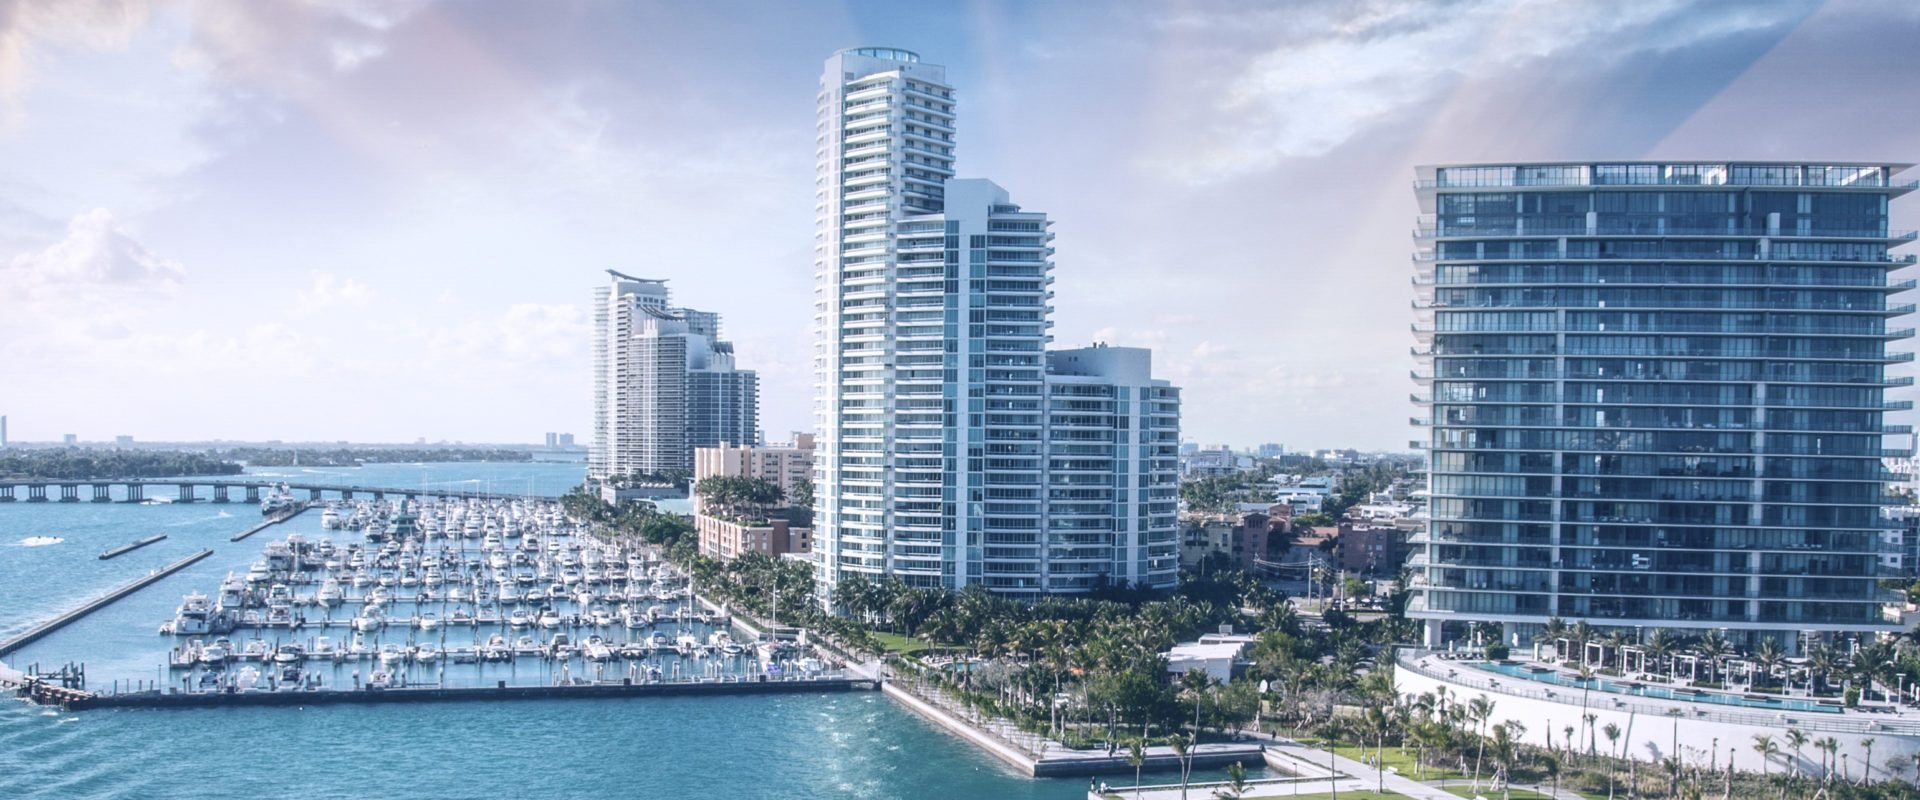 Stanton Chase Miami Office Welcomes Managing Director Cover Image